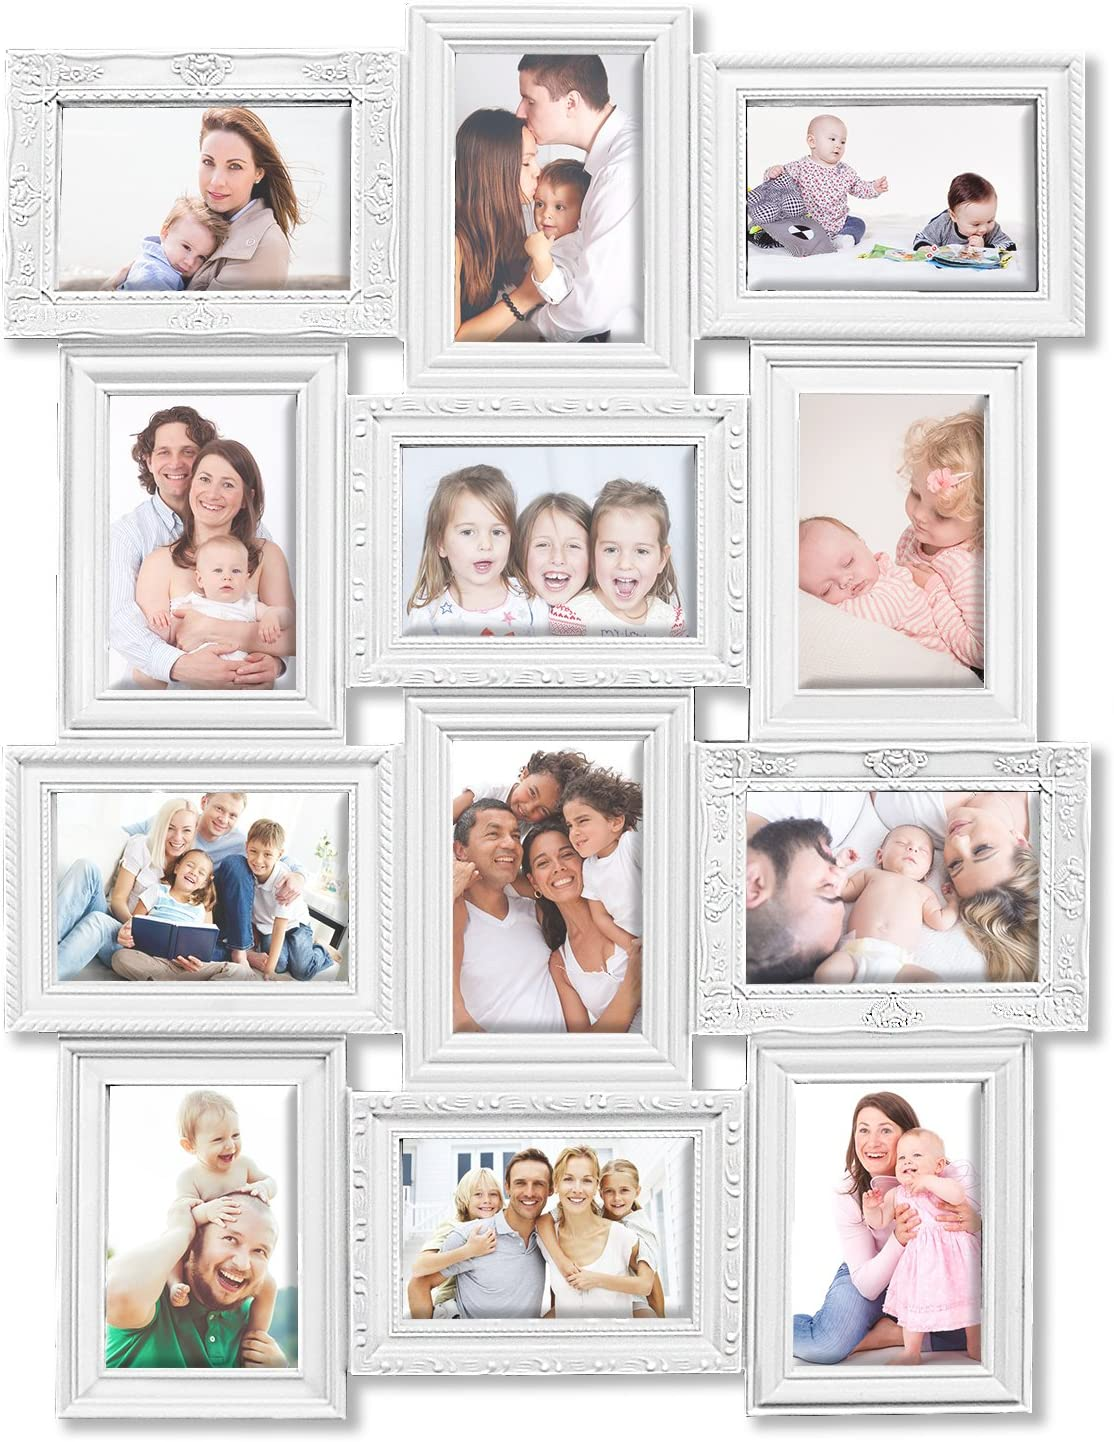 DL furniture - 12 Opening Decorative Wall Hanging Collage Puzzle Picture Photo Frame, 4 x 6 inches   White